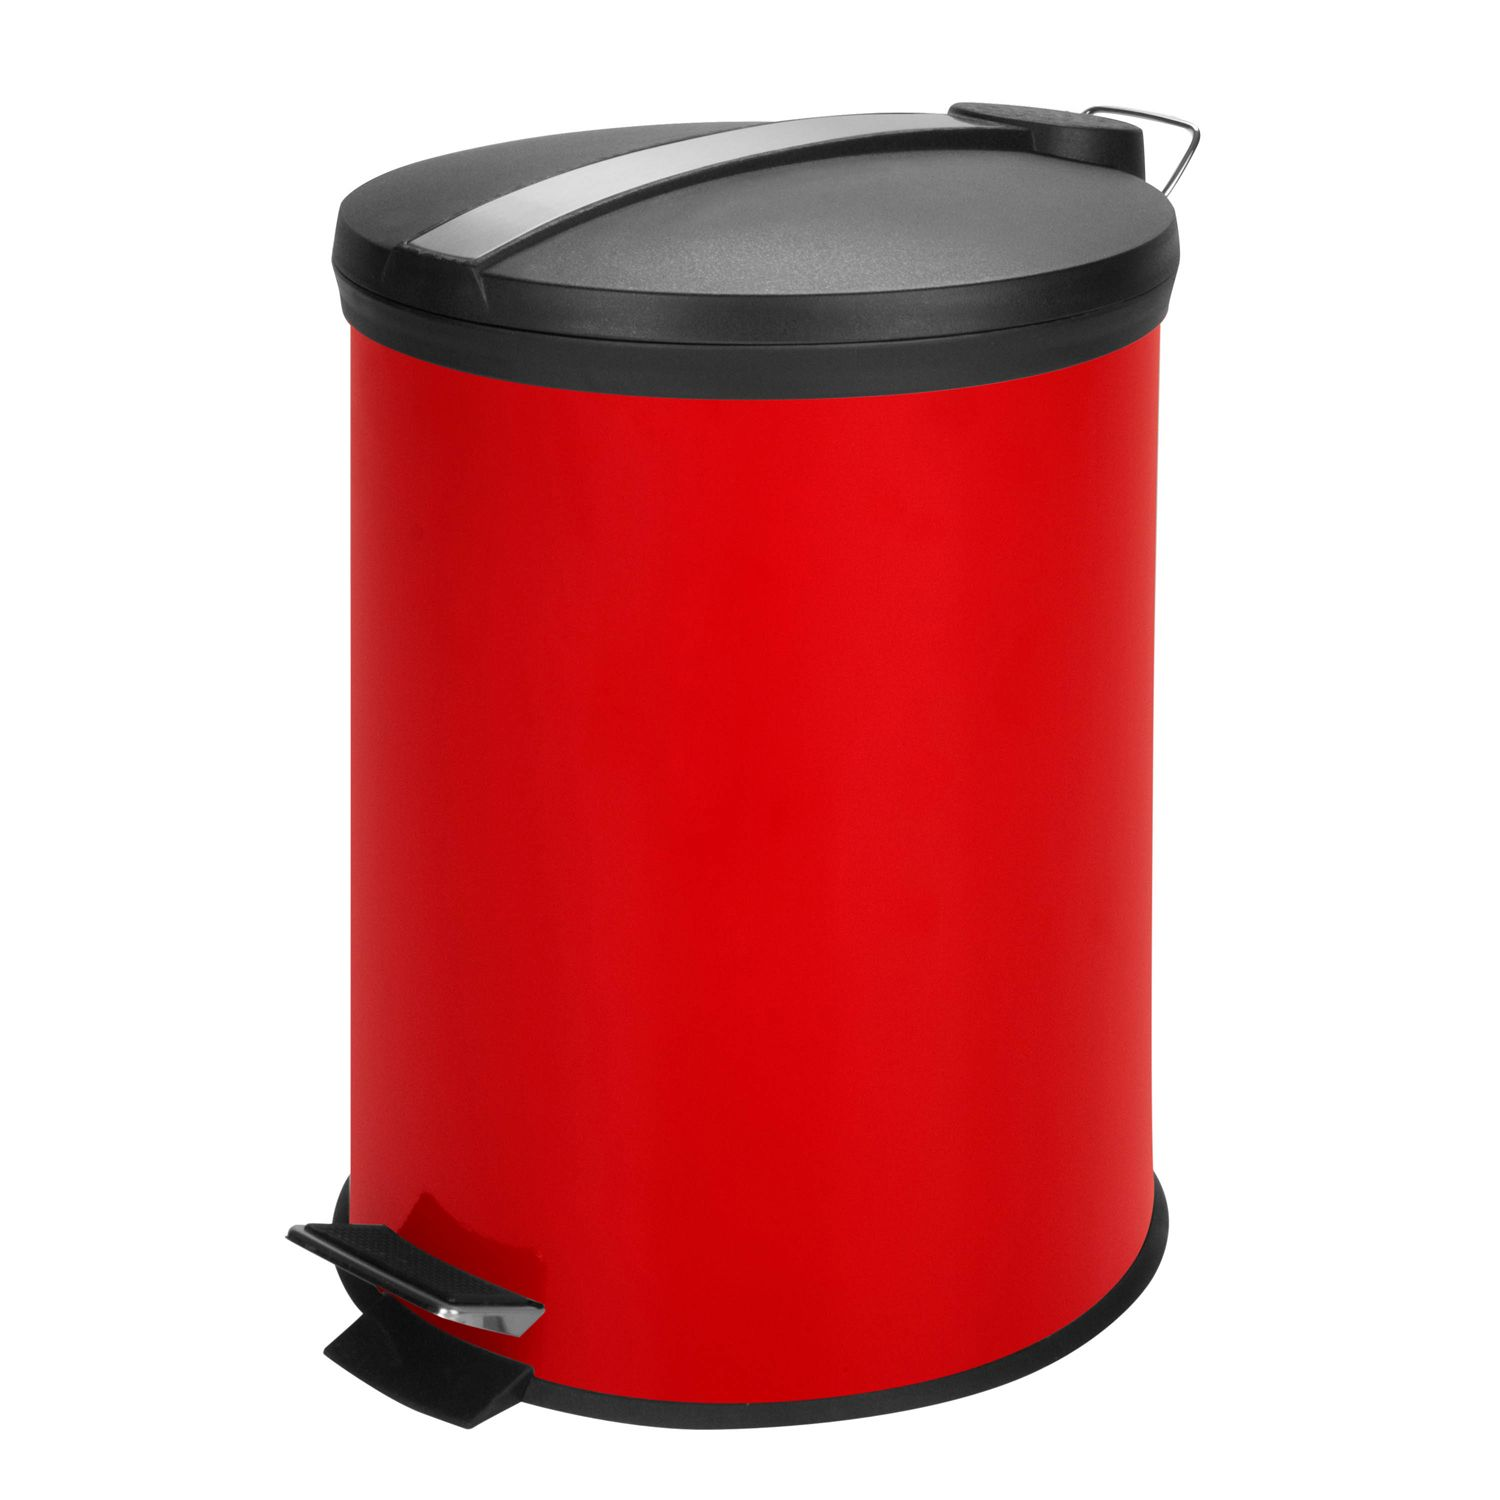 Charmant Honey Can Do 12 Liter Step Trash Can. Blue Red Black